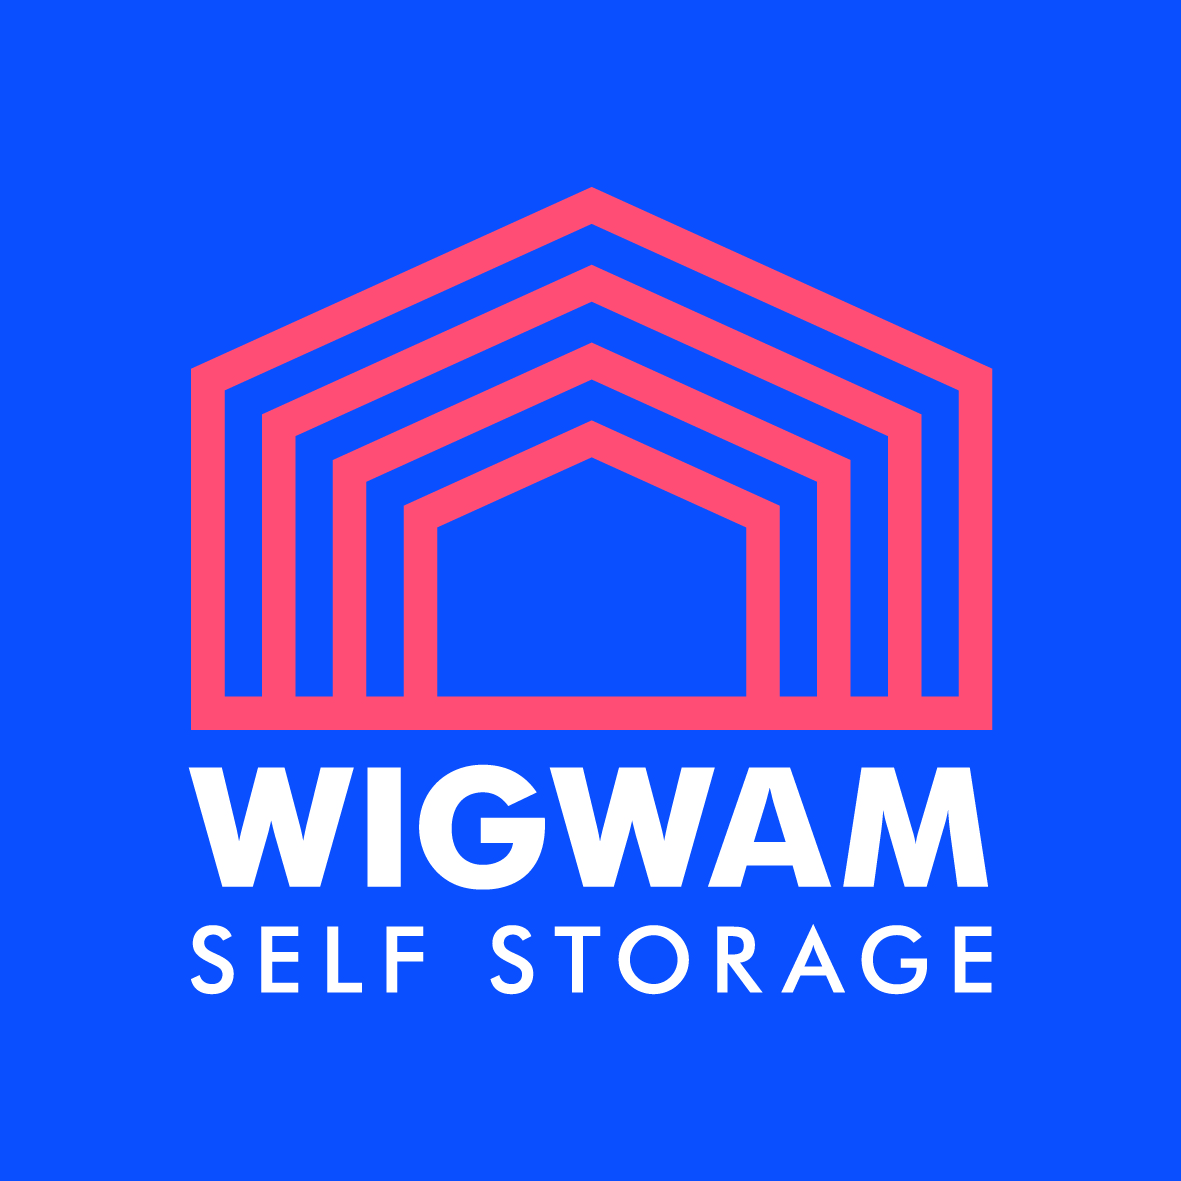 COUNTRYWIDE STORAGE CHIPPING NORTON LIMITED